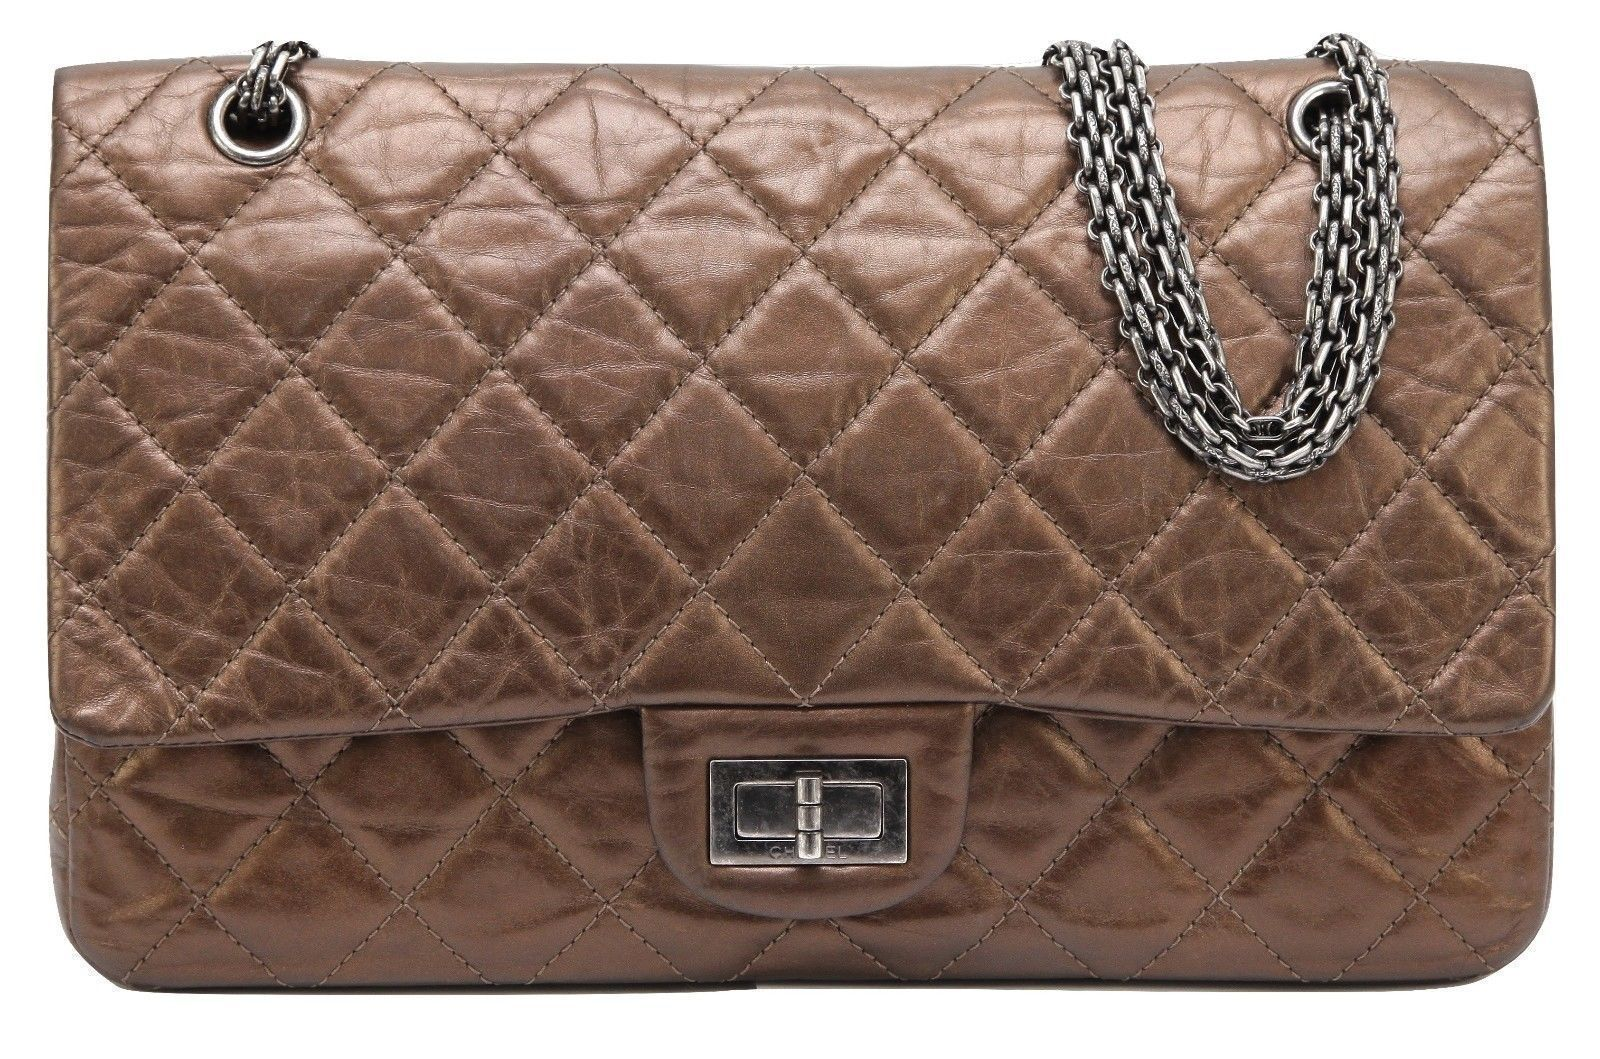 b97391d5acf1 CHANEL Bag Metallic Leather 2.55 Reissue 227 and 50 similar items